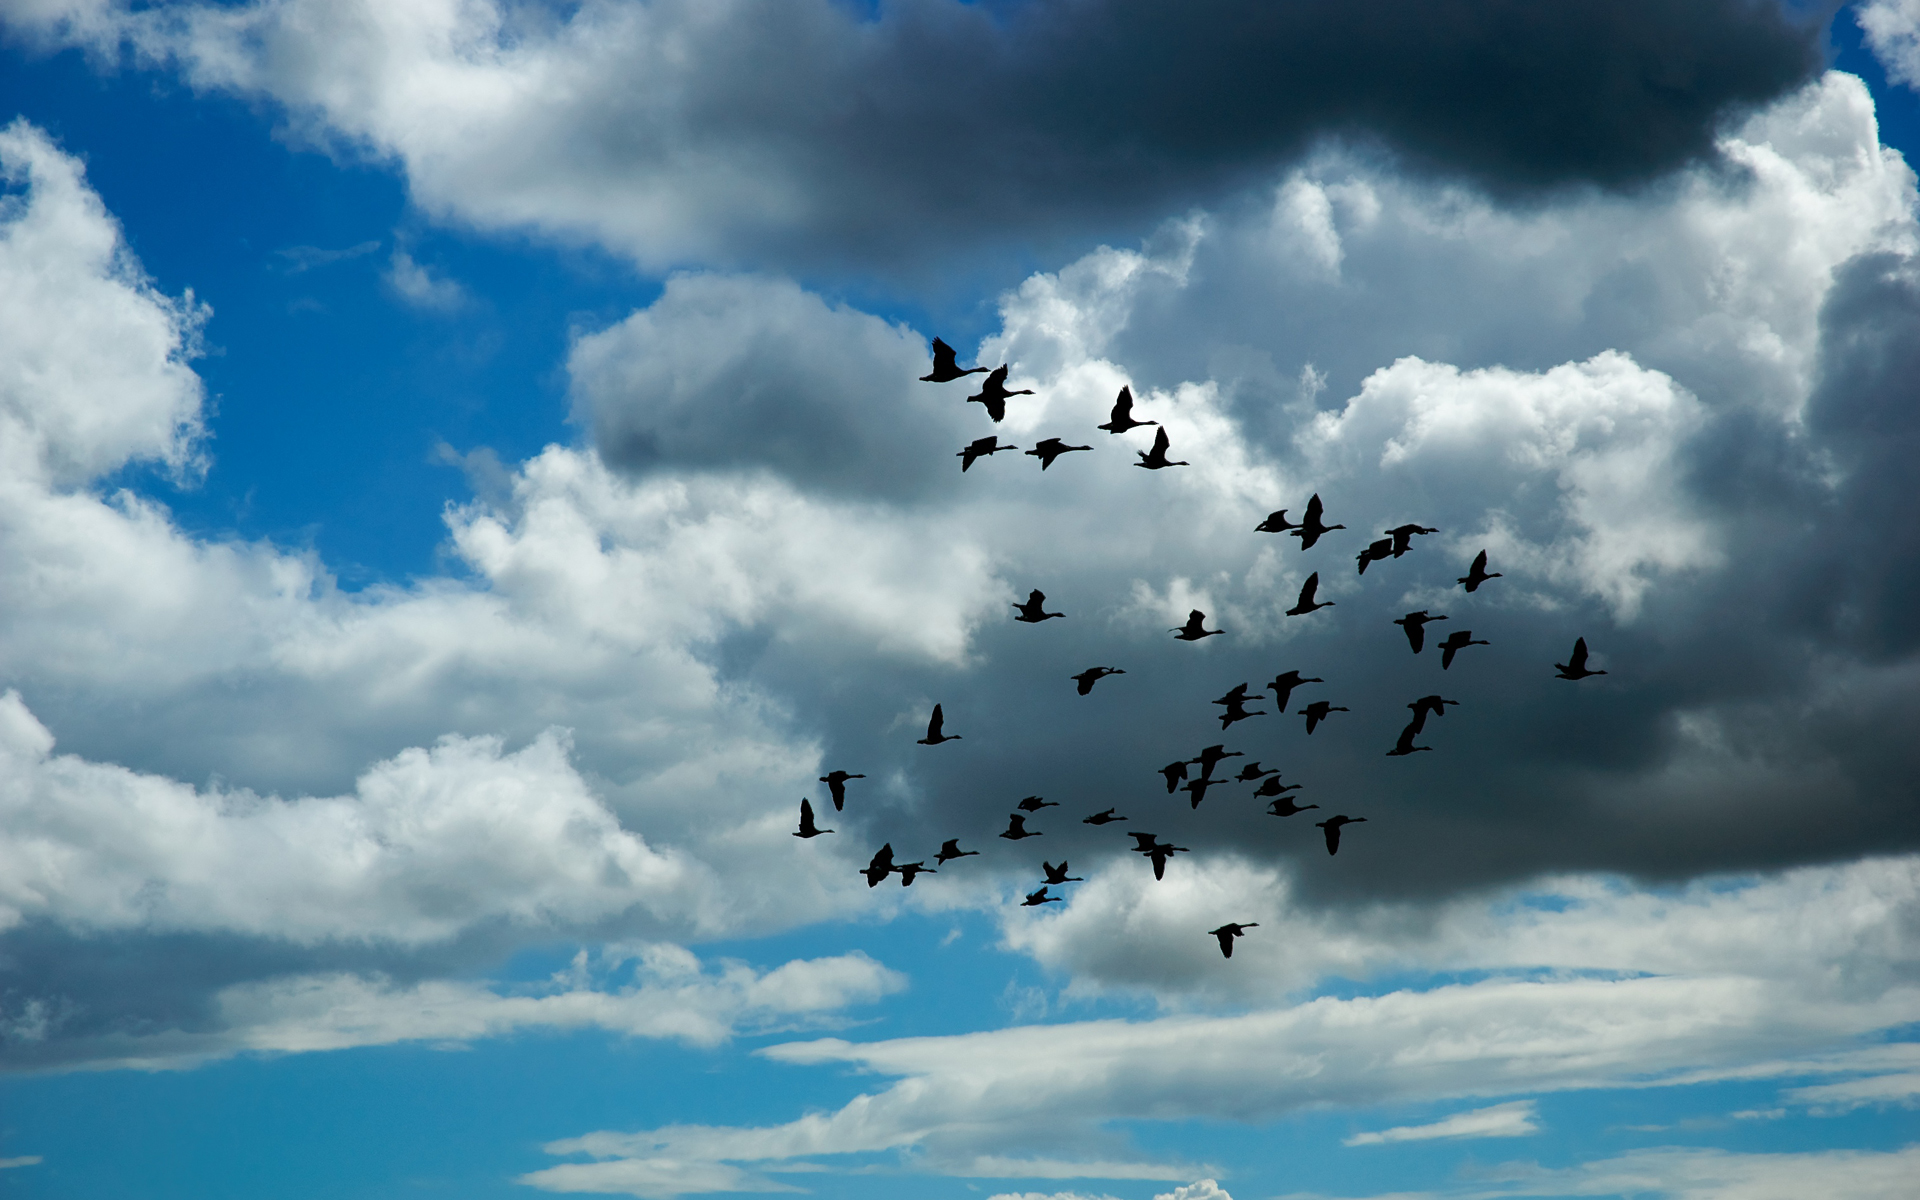 flying birds widescreen background wallpapers dan pontefract 1920x1200